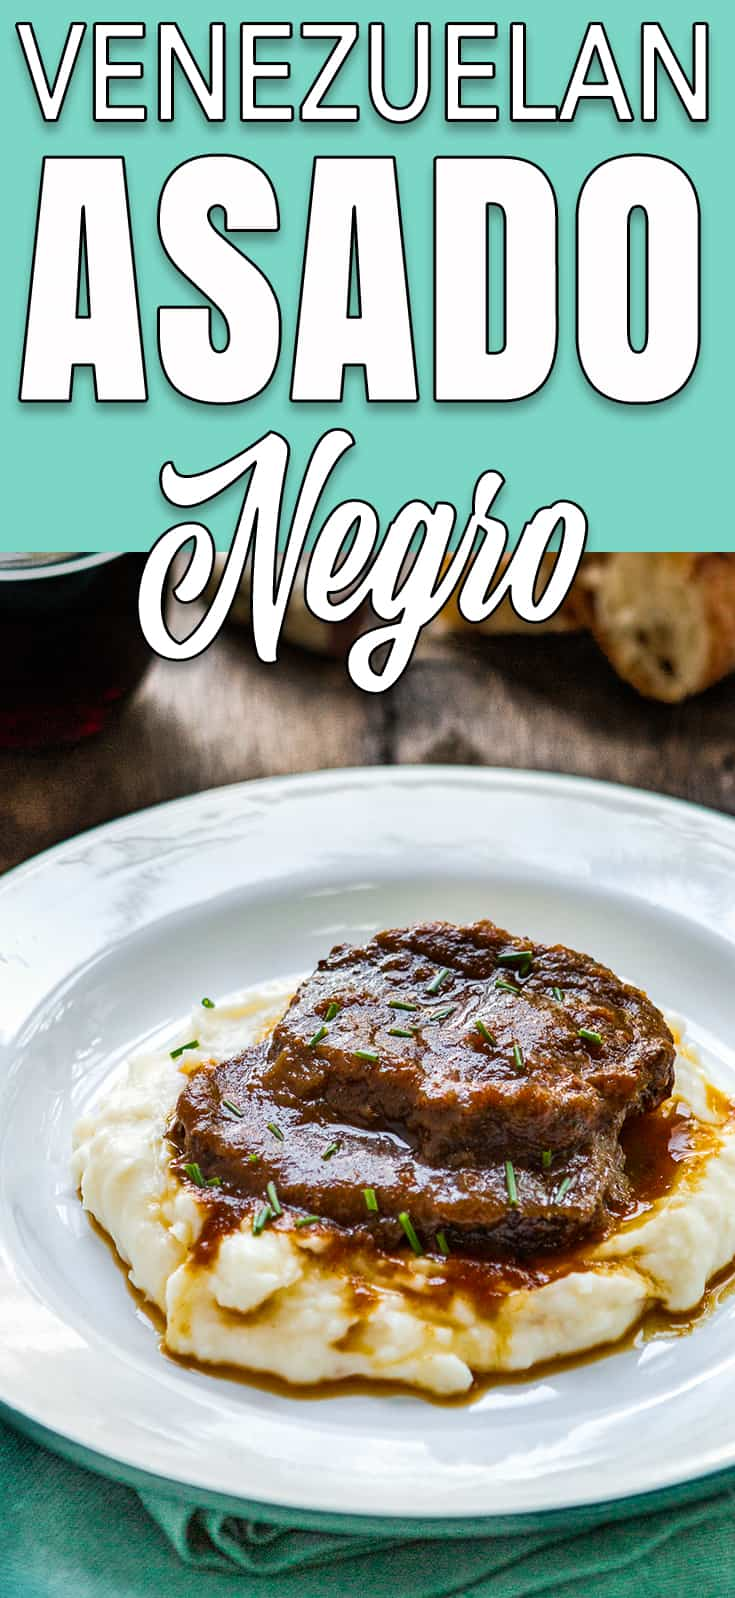 Venezuelan Asado Negro in a white plate with mashed potatoes with descriptive text